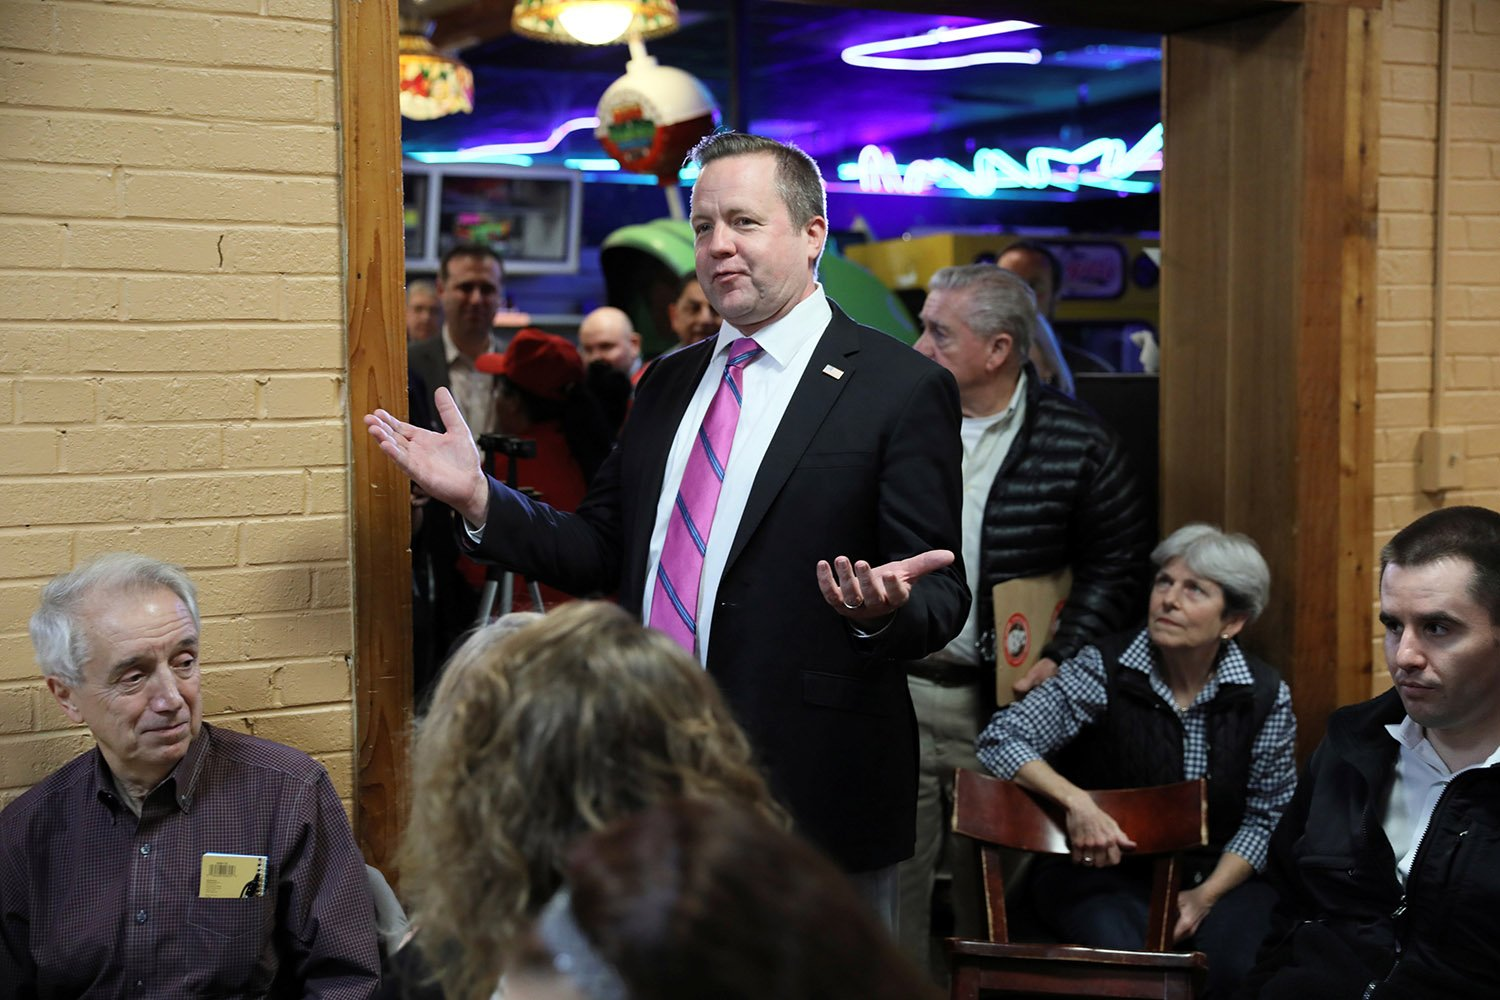 Virginia Republican candidate for U.S. Senate Corey Stewart arrives to speak to voters at a campaign event at a pizza parlor in Annandale, Virginia, U.S. October 30, 2018. REUTERS/Jonathan Ernst